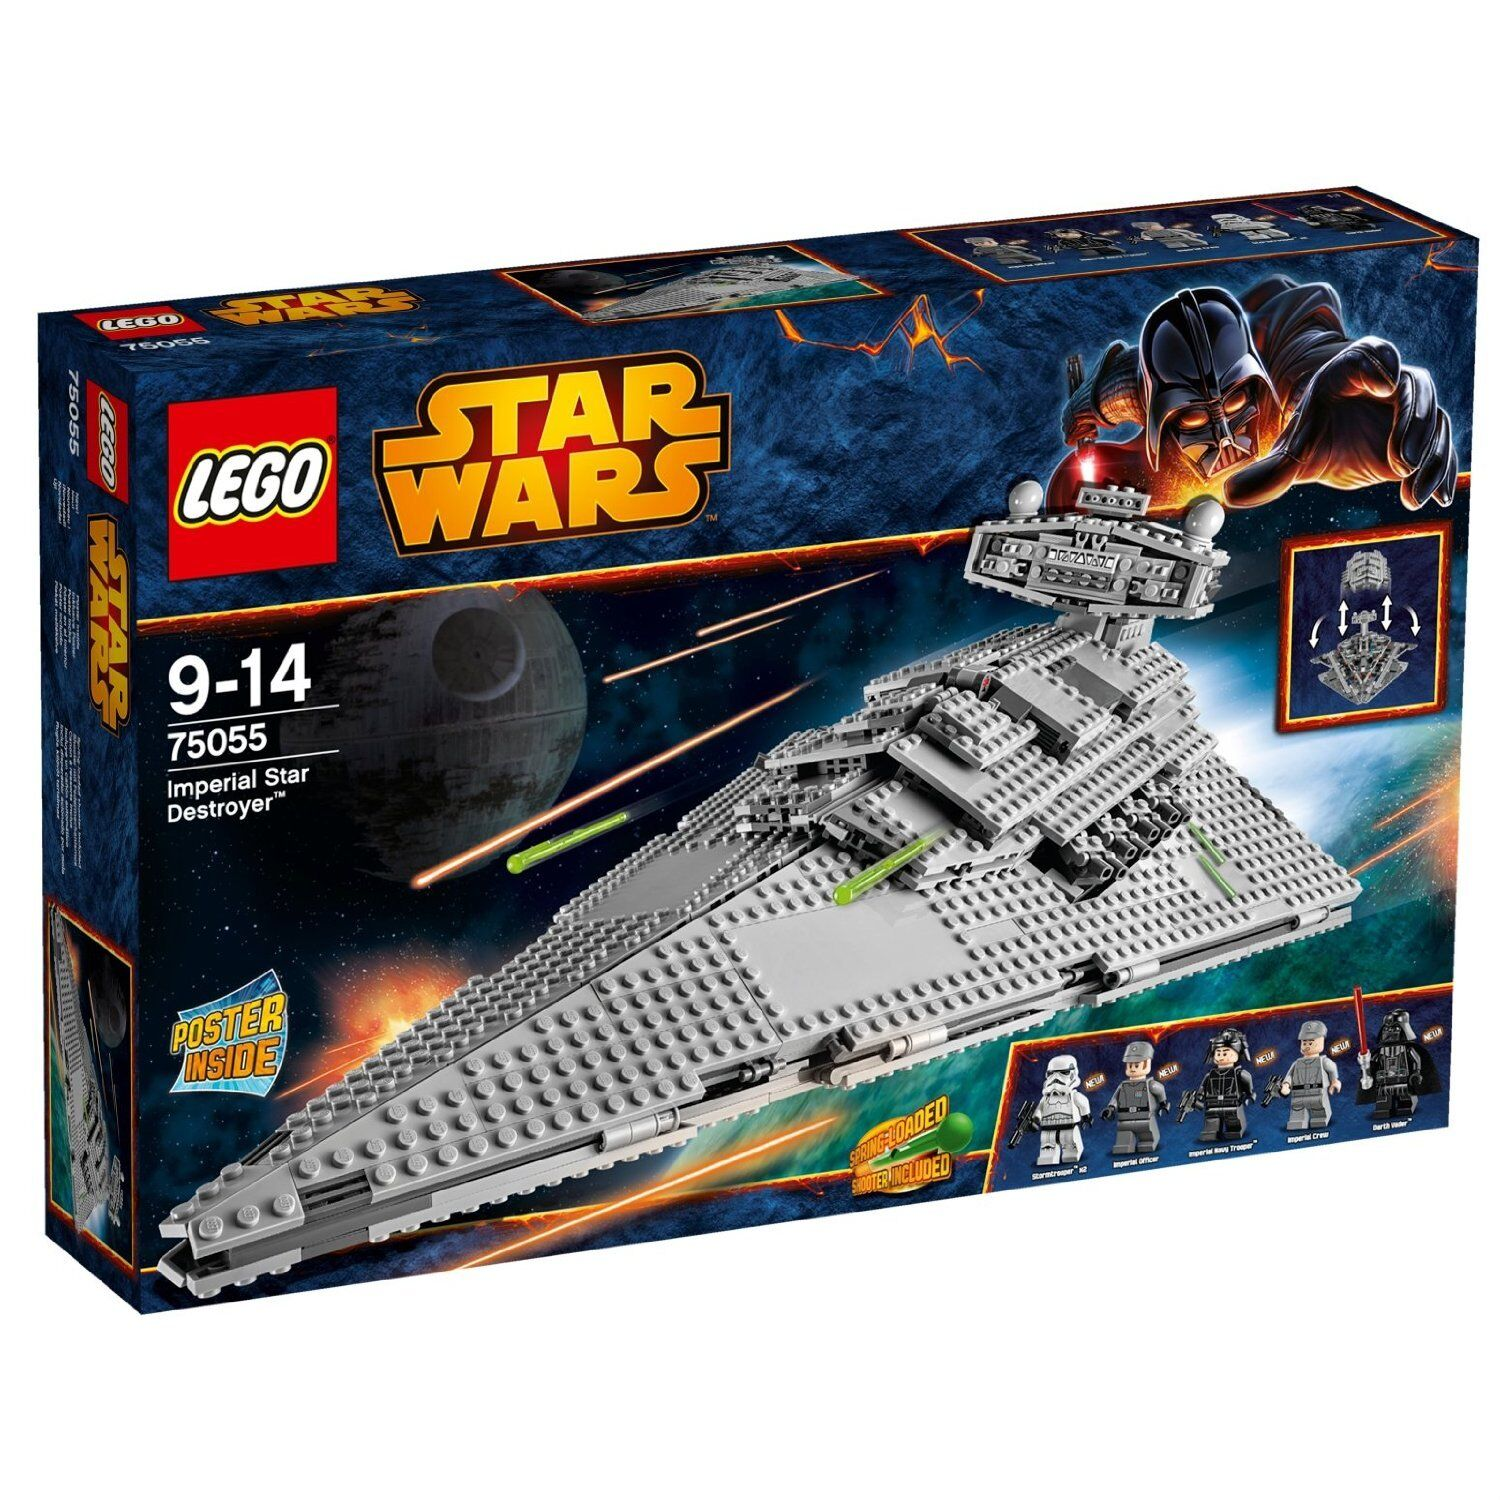 LEGO STAR WARS 75055. IMPERIAL STAR DESTROYER. SET NUEVO Y PRECINTADO.